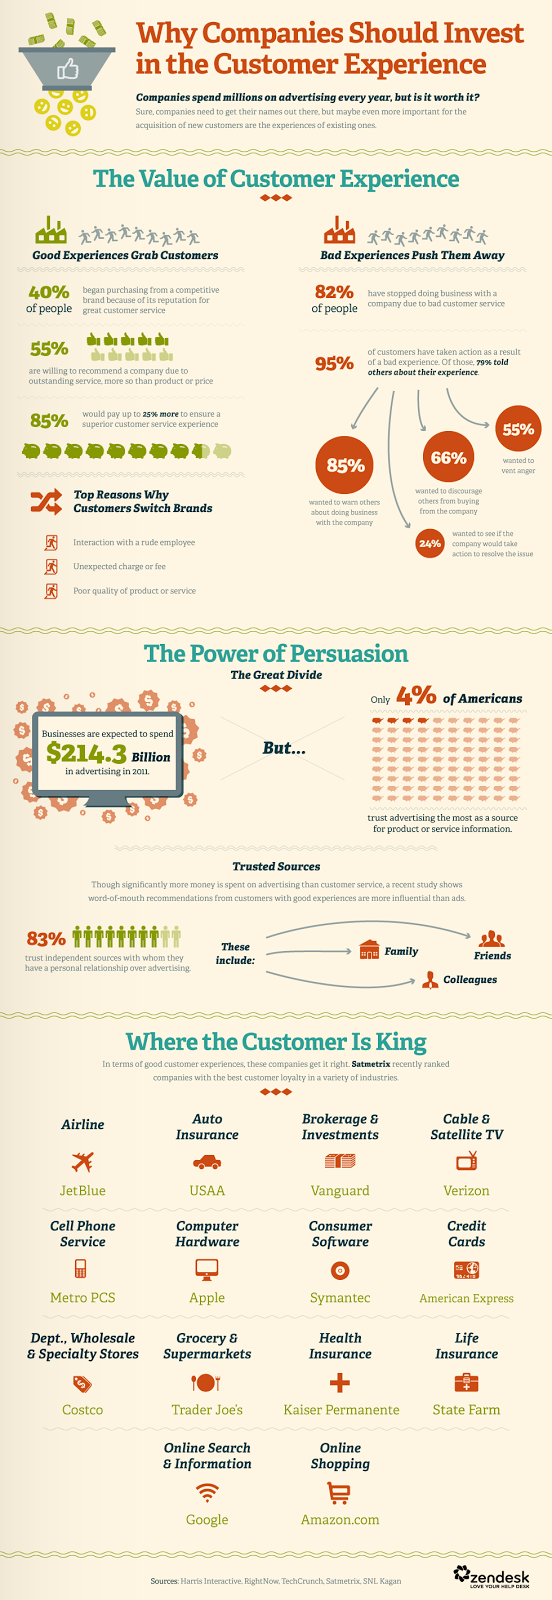 http://www.business2community.com/customer-experience/customer-experience-important-advertising-infographic-0726258#!q7VC8